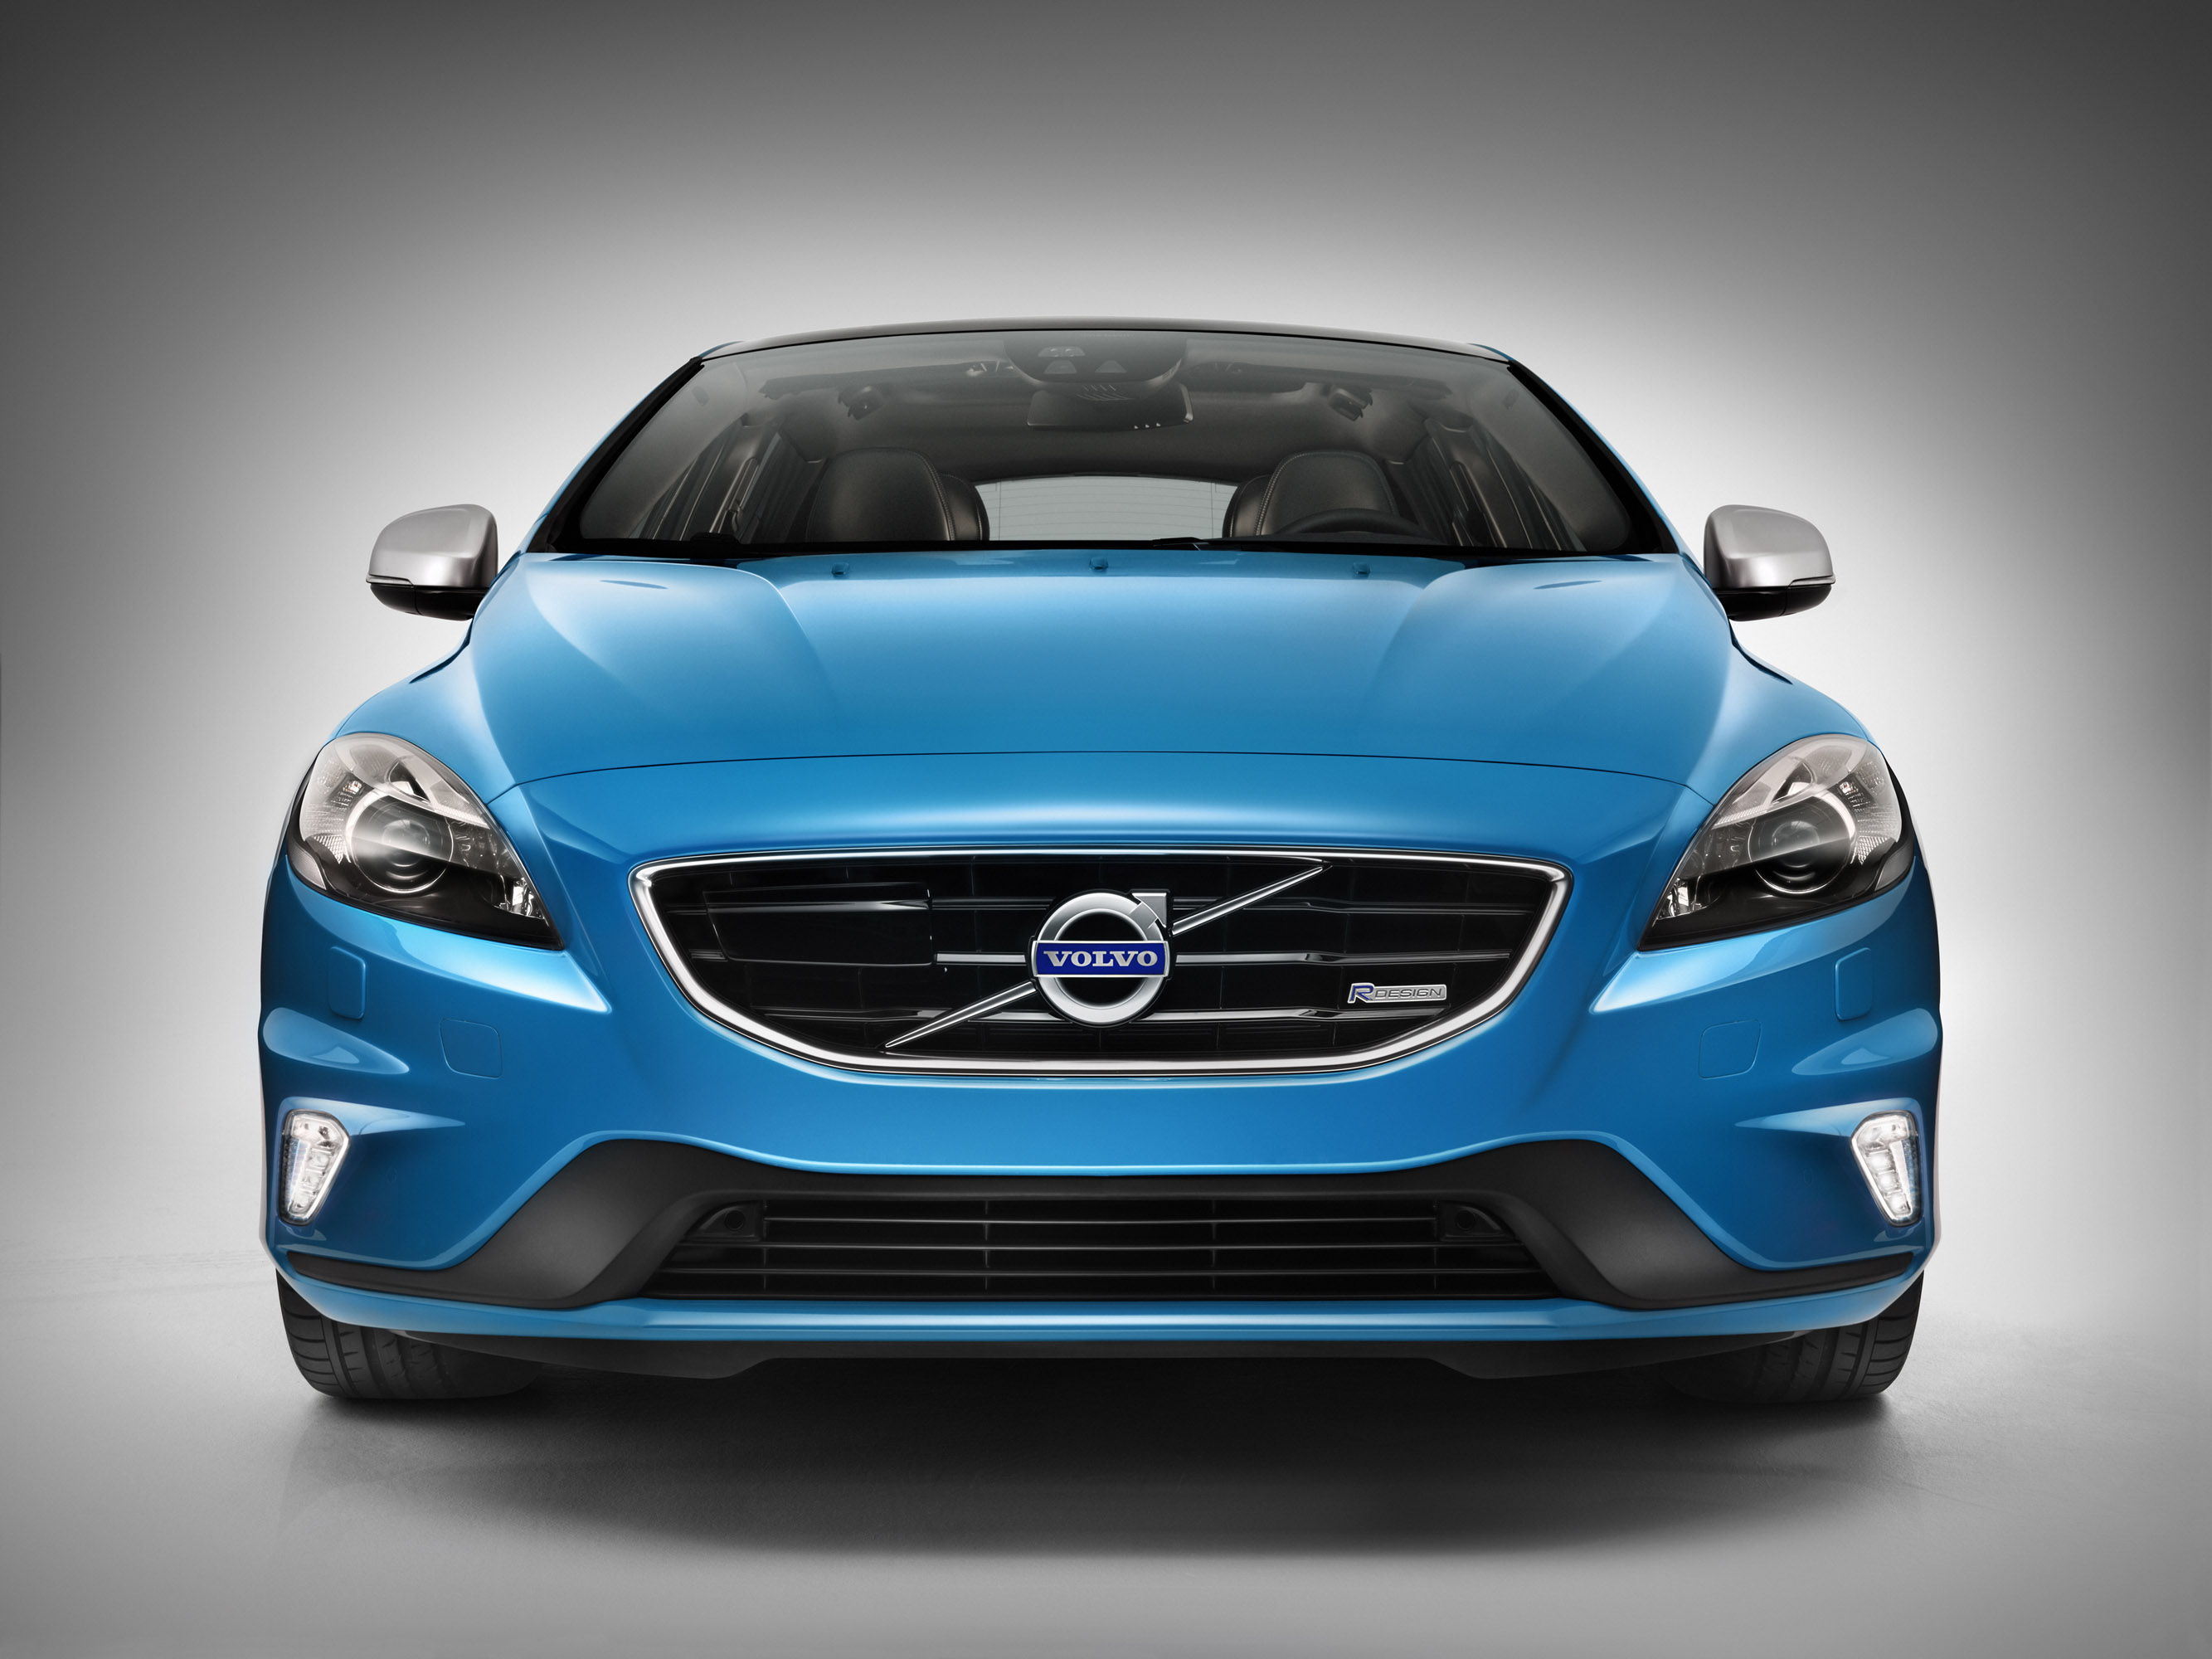 2013 volvo v40 r design and cross country pricing 22 295 and 22 595. Black Bedroom Furniture Sets. Home Design Ideas